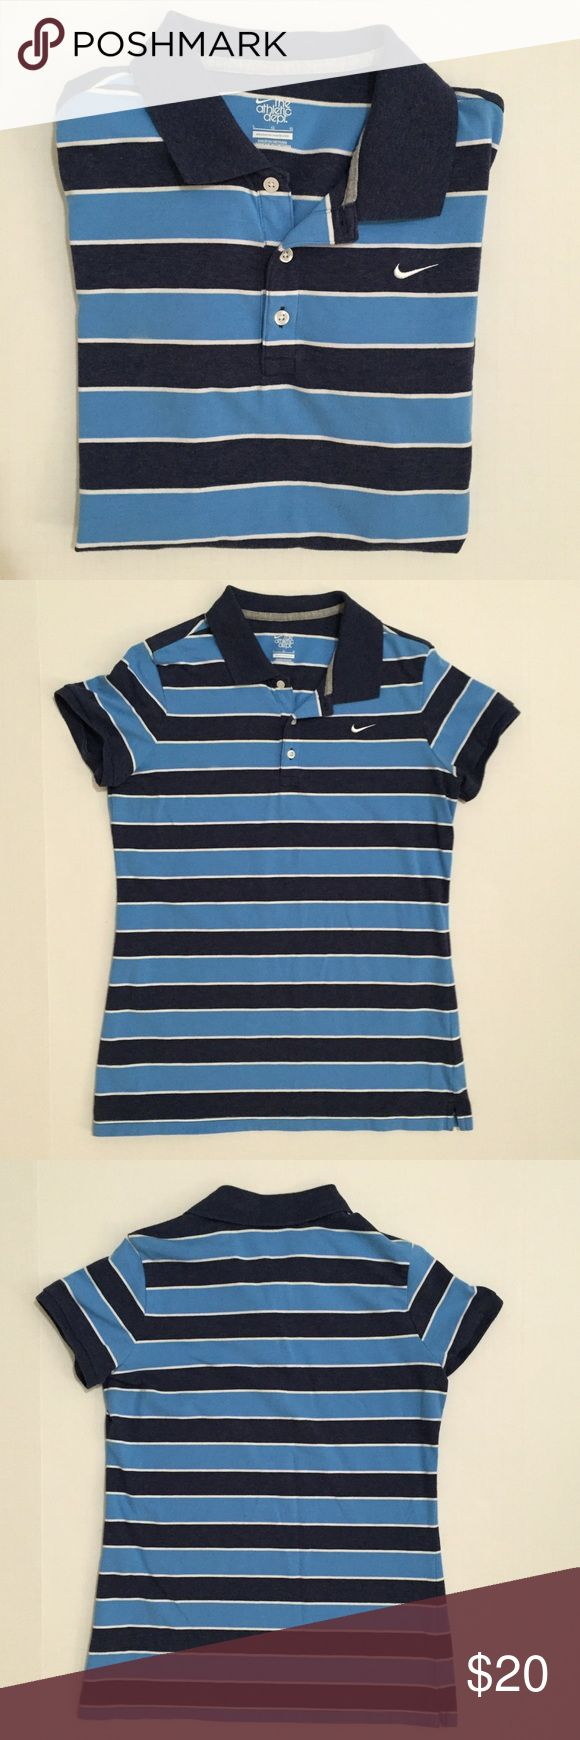 [Nike] women's striped polo collar shirt M-L [Nike] women's striped polo collar shirt M-L •🆕listing •good pre-owned condition •multi-color blue (heathered navy) and white striped, white embroidered swoosh •collared, 3 buttons •material 93% cotton 7% spandex, very soft •may fit M-L, tag size L, stretchy- but slim fit •offers welcomed using the offer feature or bundle/bundle offer welcomed••• Nike Tops Tees - Short Sleeve